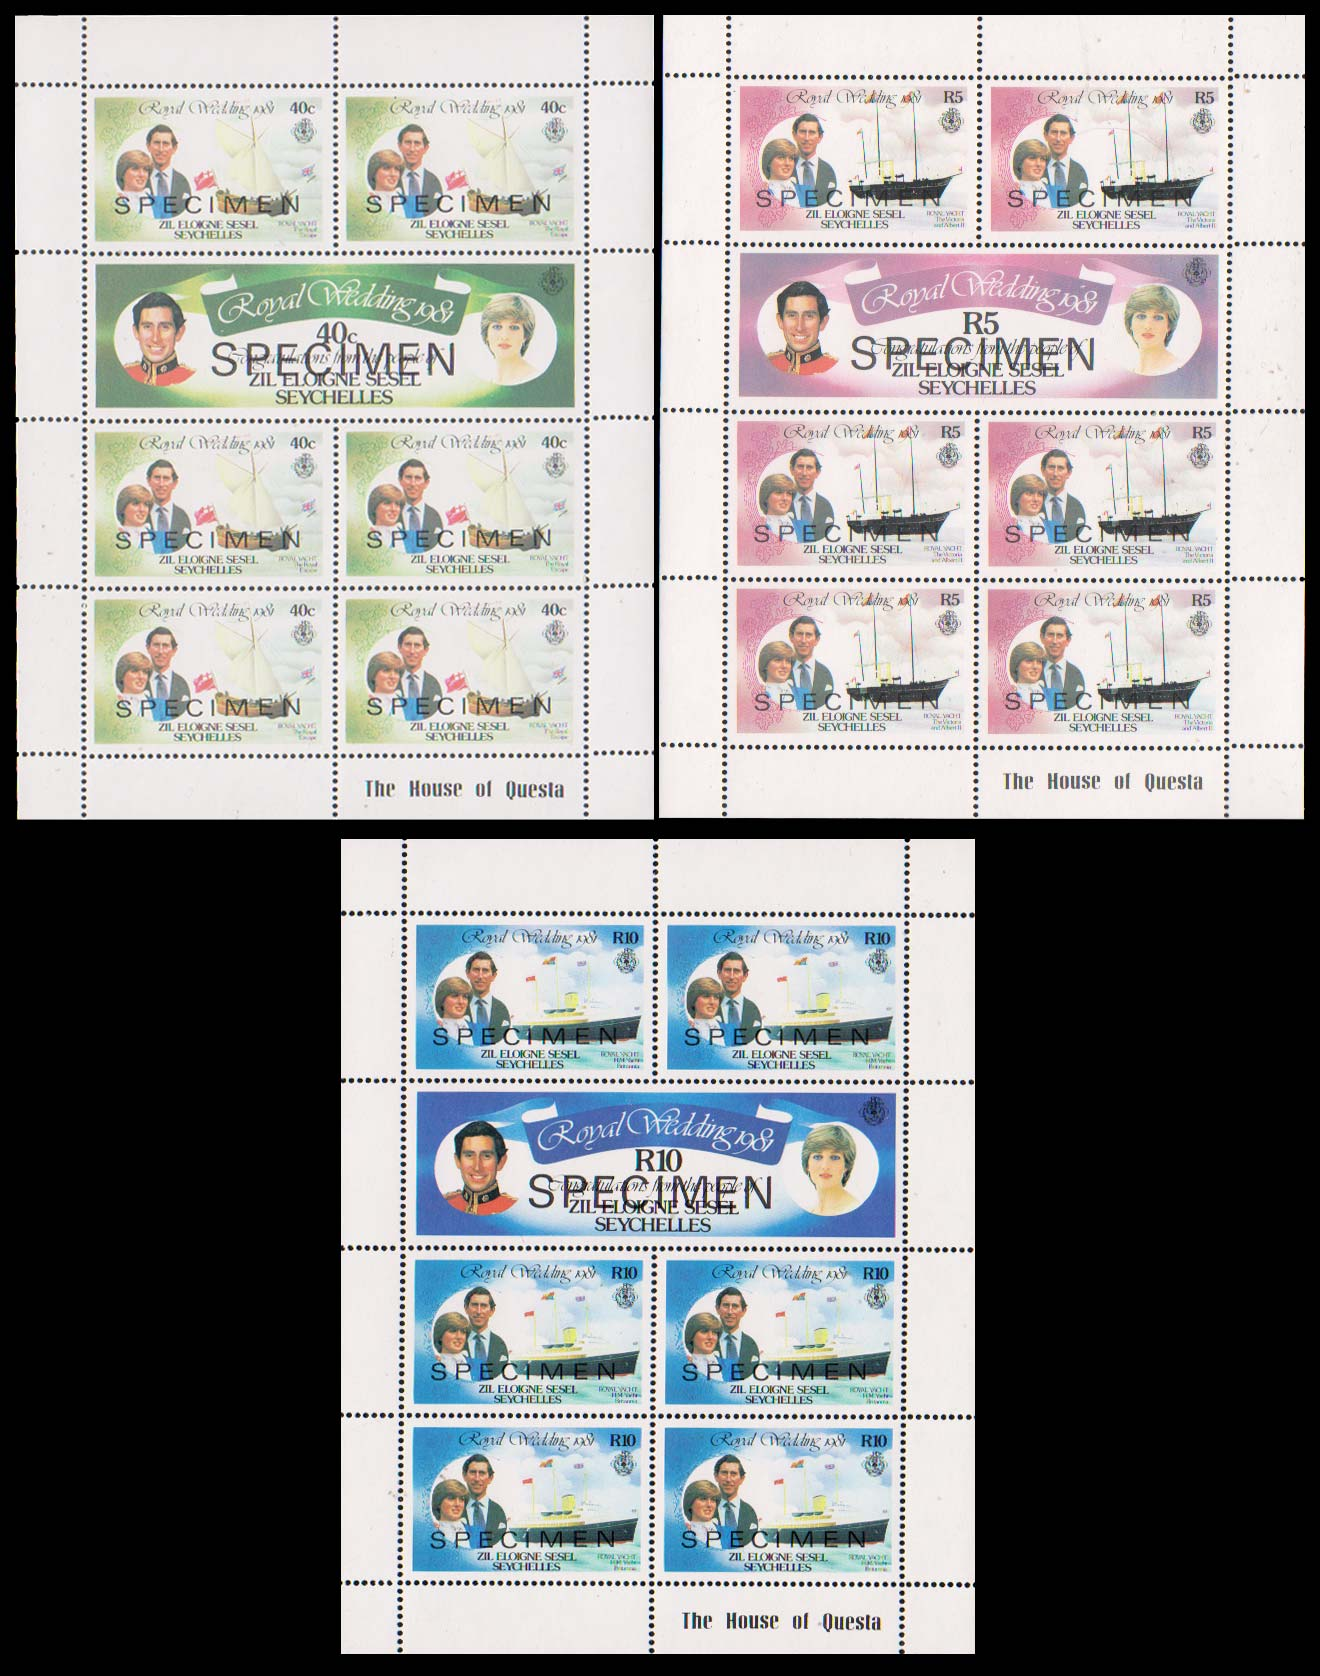 SAMPLE sheets of Zil Elgwannen Sesel 1981 Royal Wedding stamps.